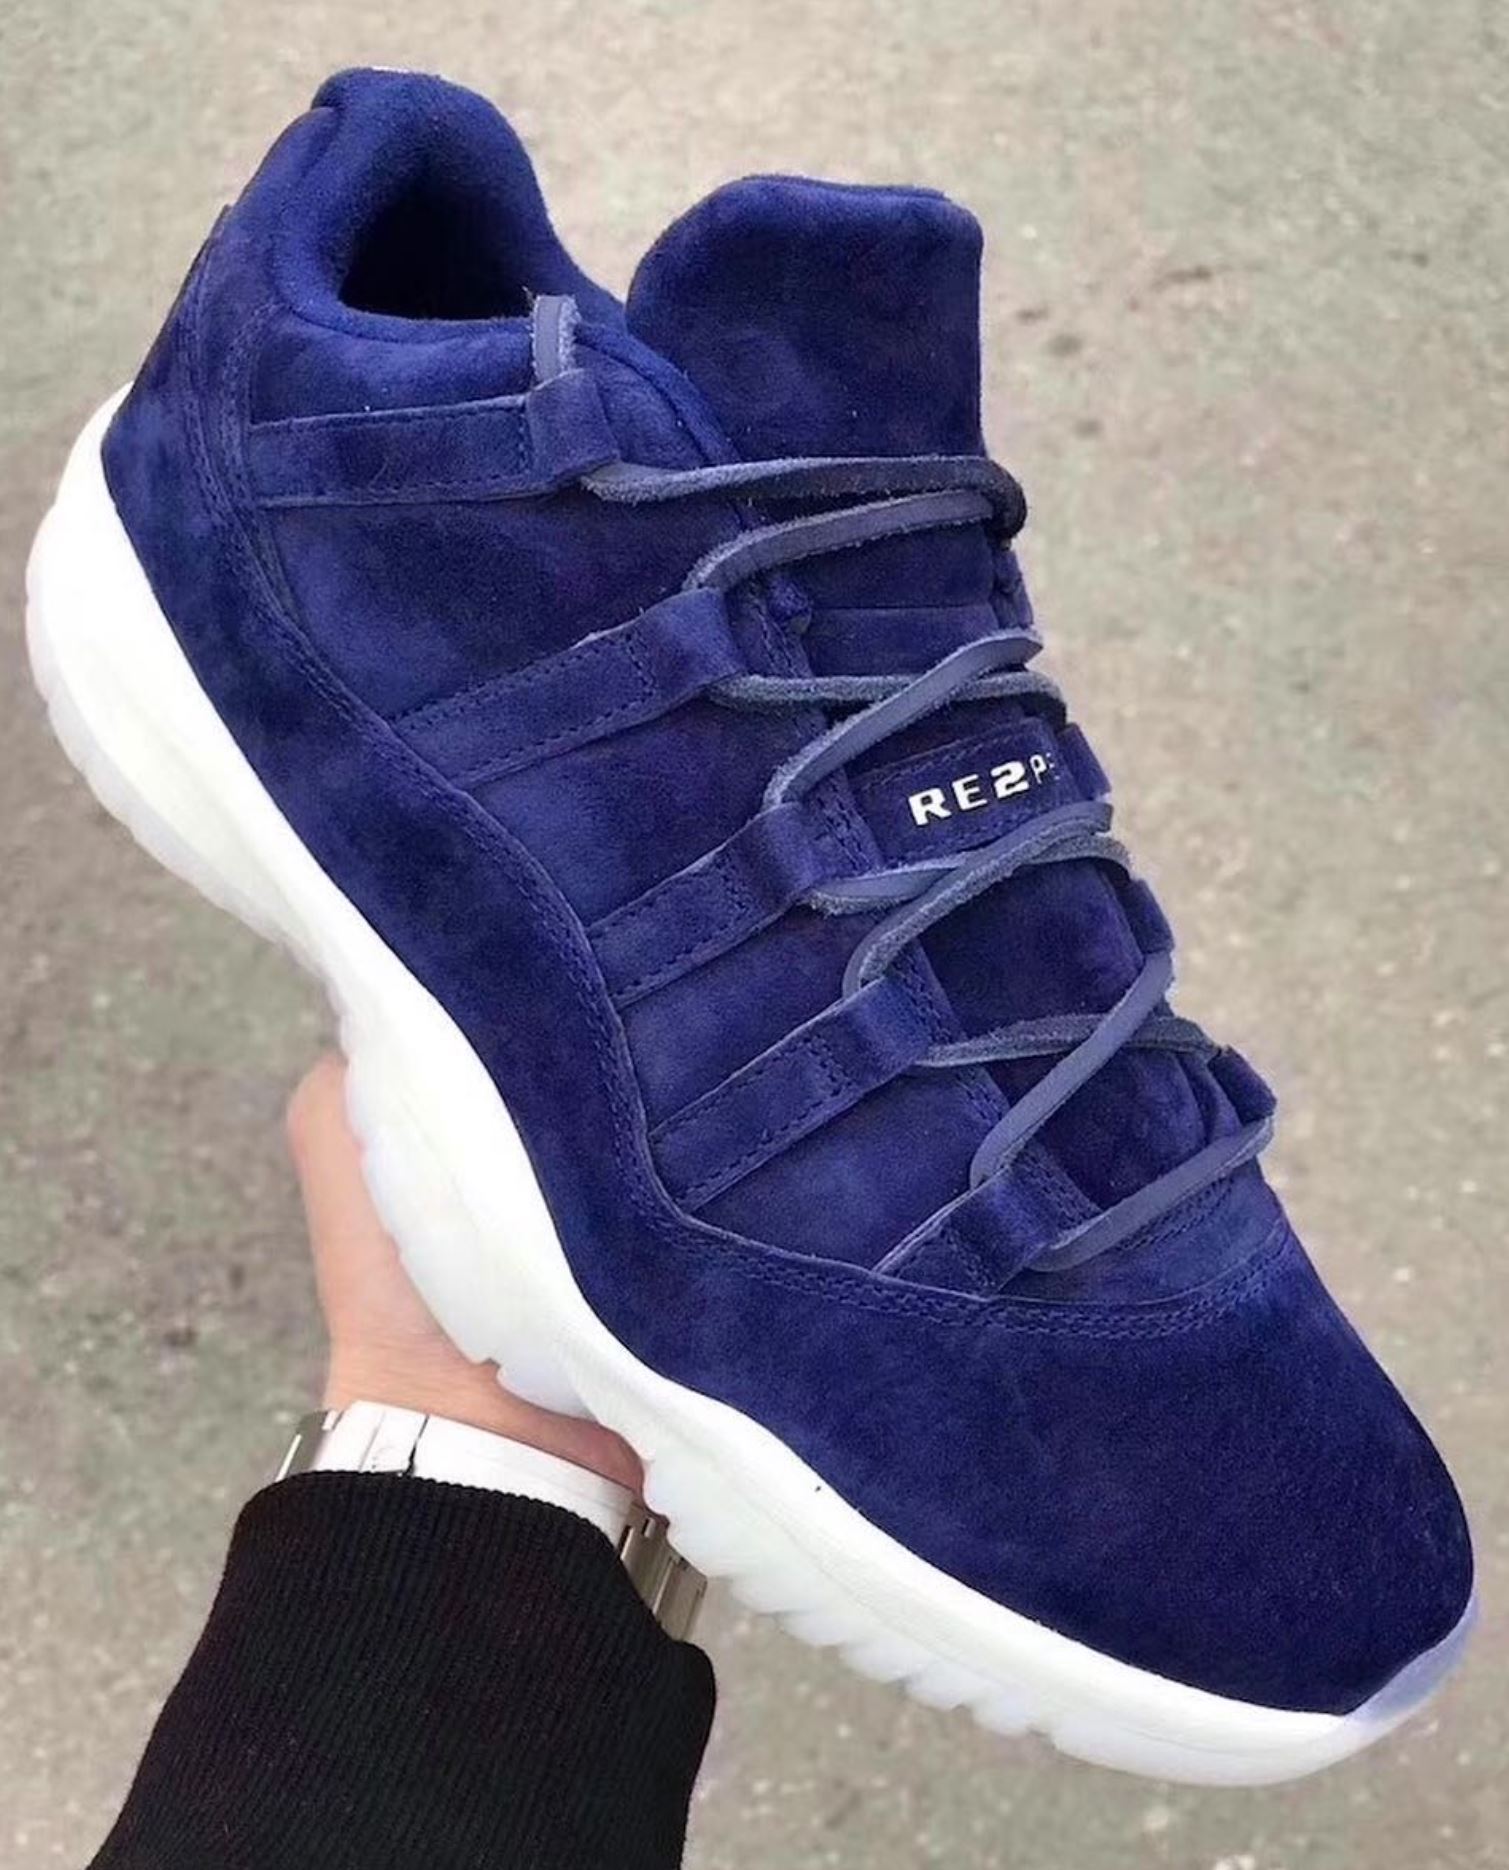 dd17c04b520 air jordan 11 low RE2PECT · Jordan Brand / Kicks Off Court / Kicks On Court  ...